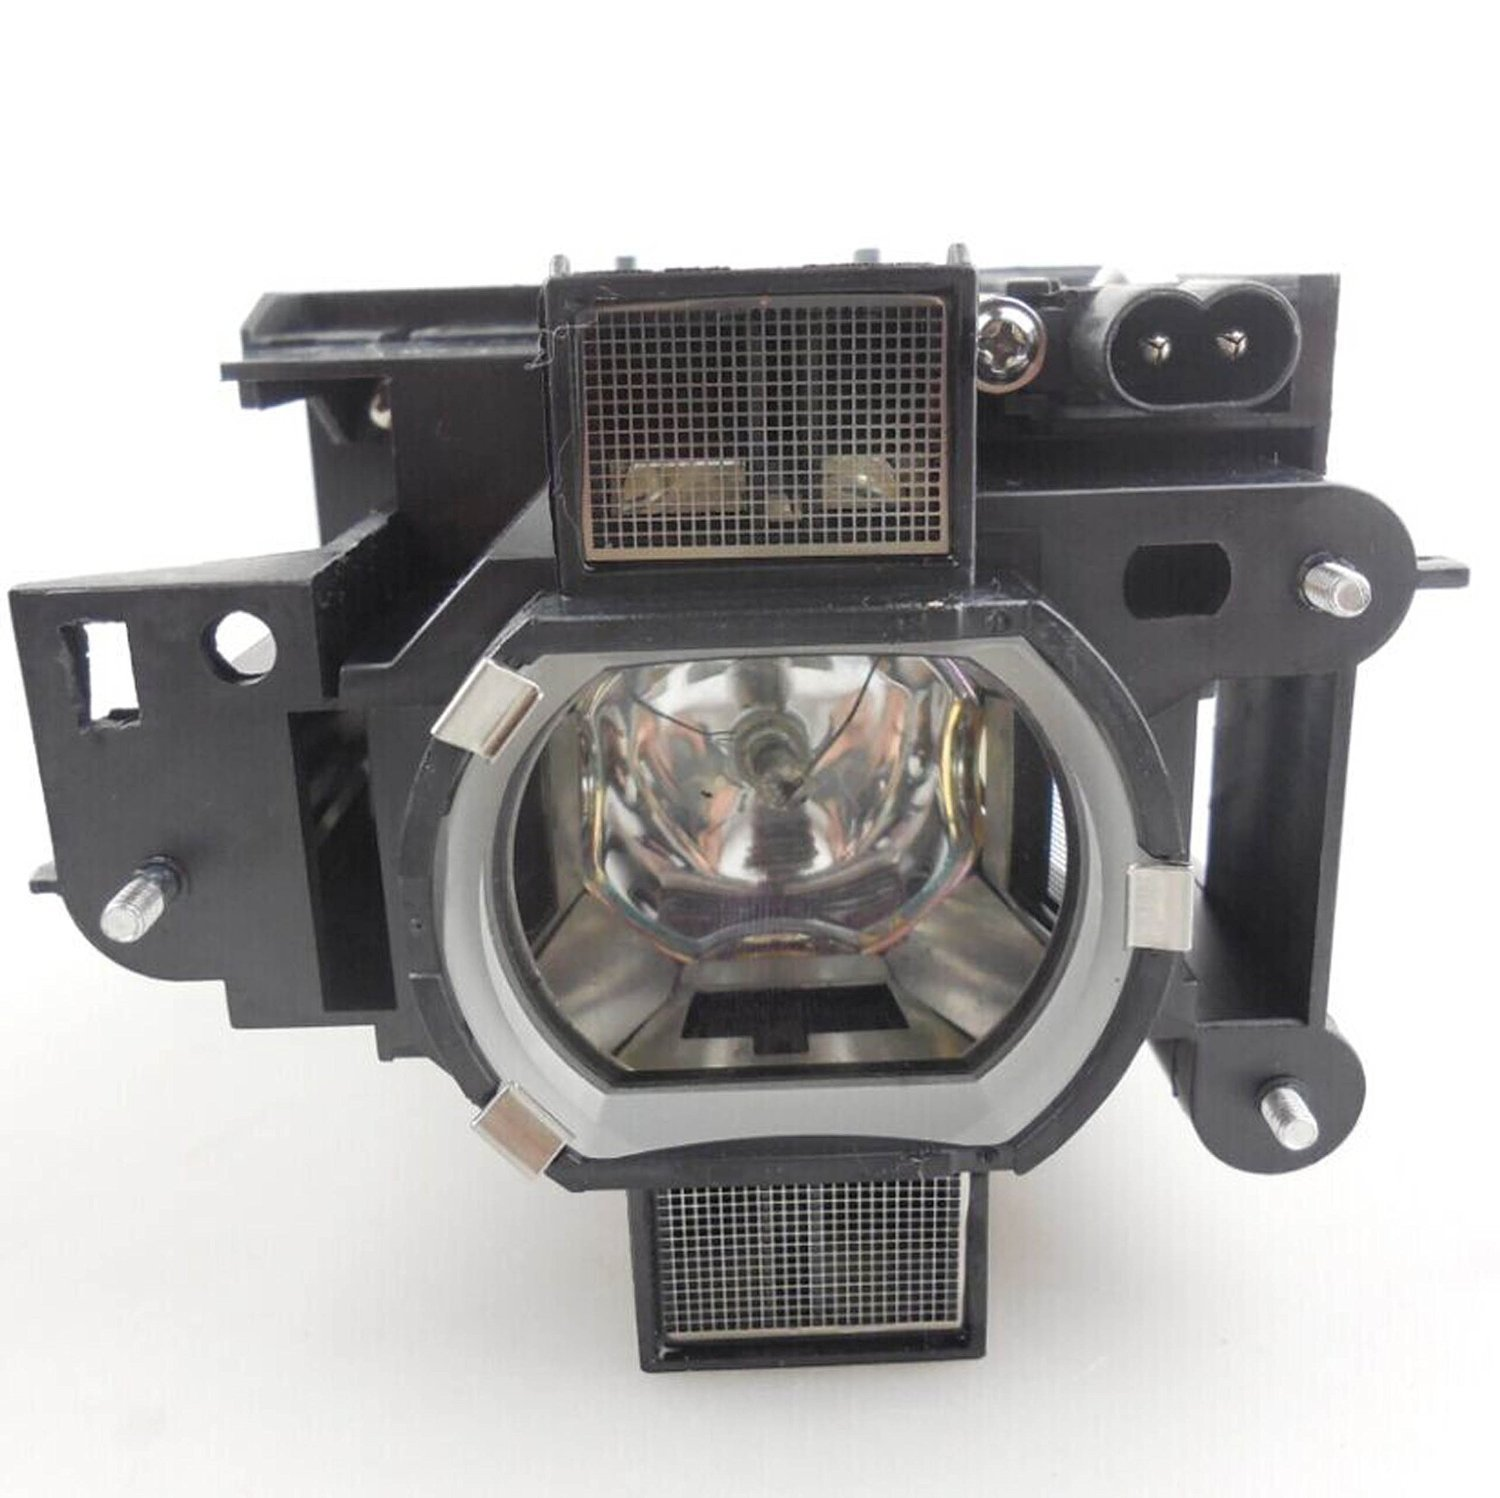 HFY marbull Replacement Lamp w/Vivienda dt01471 para Proyector Hitachi CP-WU8460/cp-wx8265/cp-x8170 Proyector para 62a307